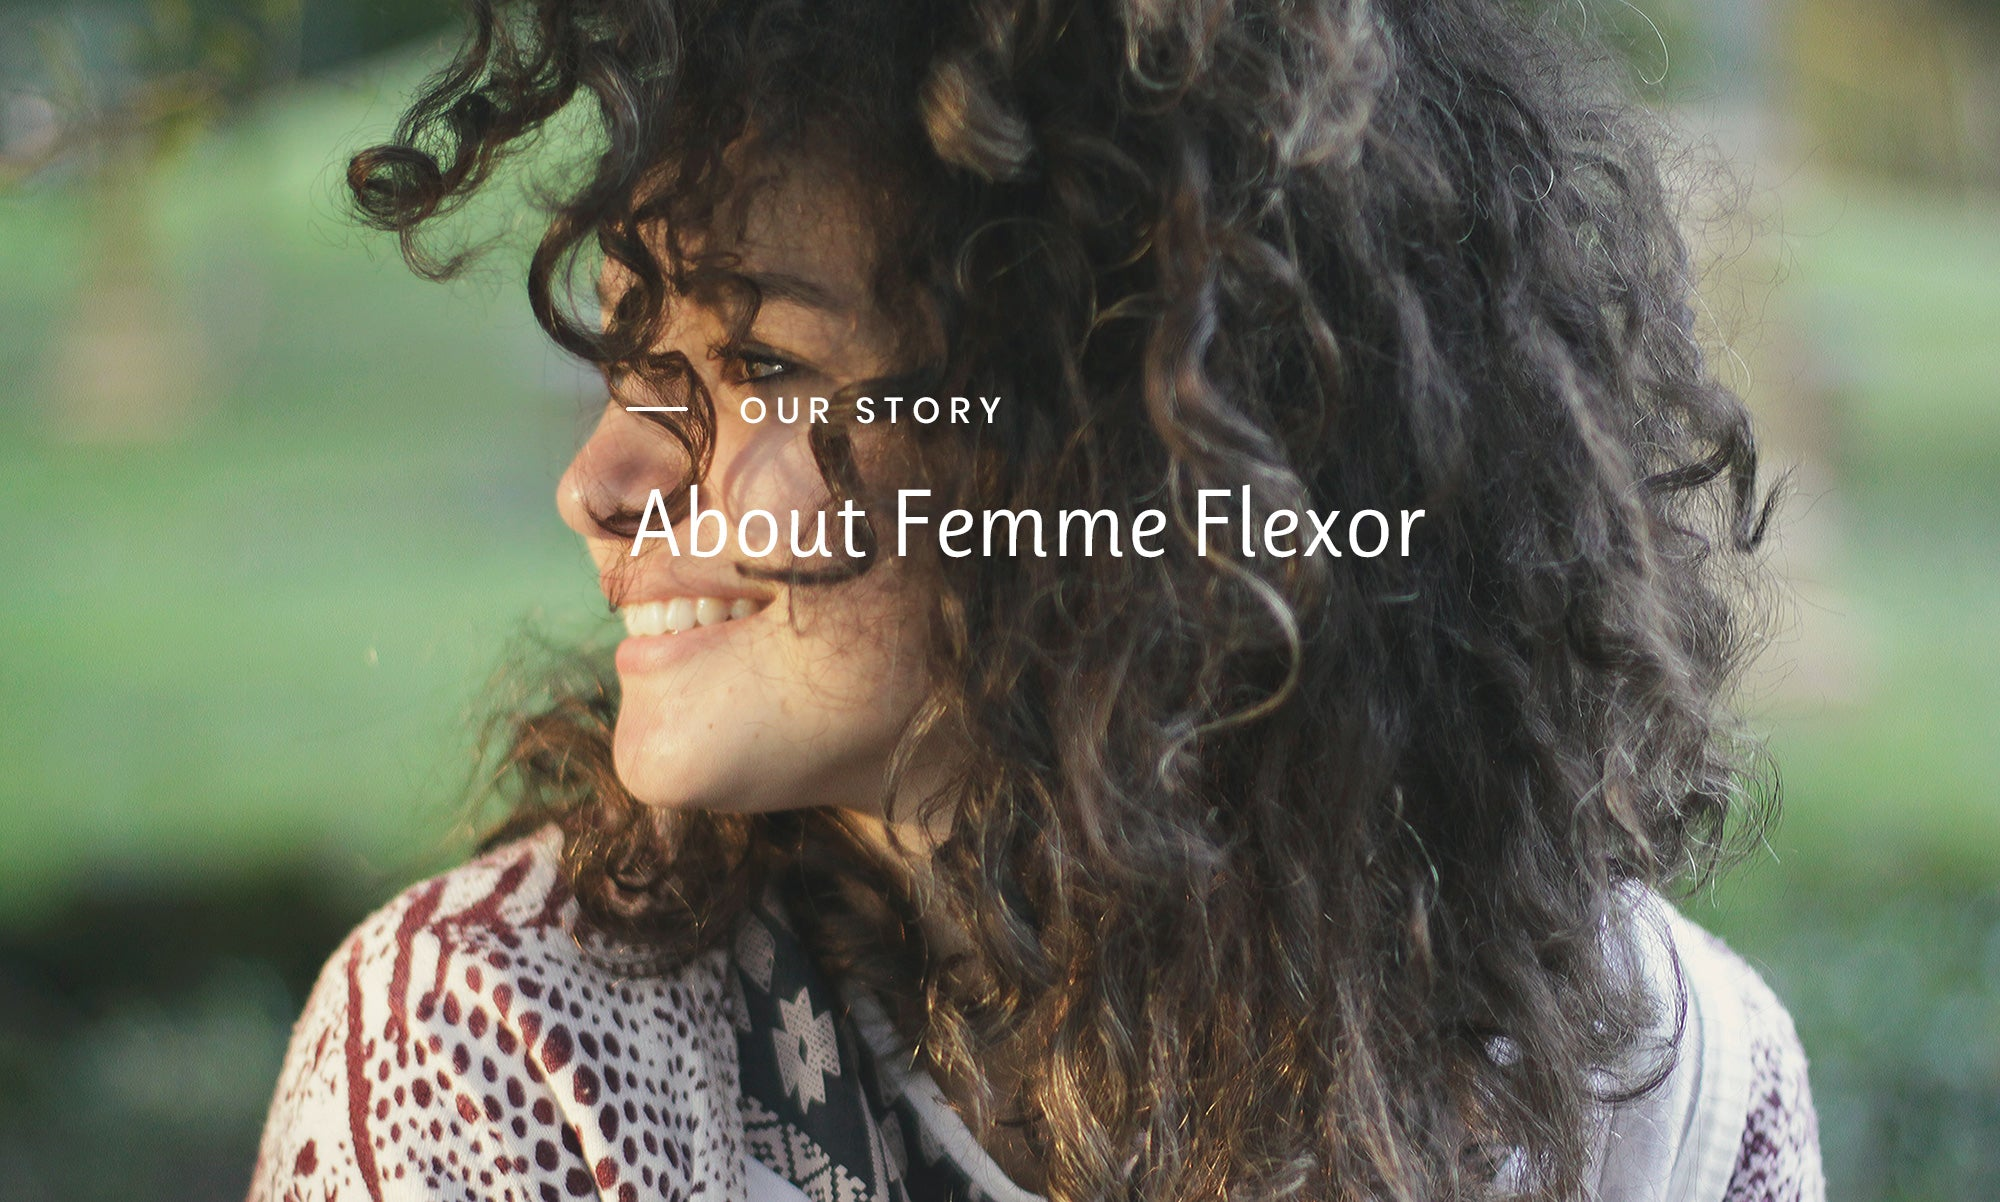 Our Story - About Femme Flexor